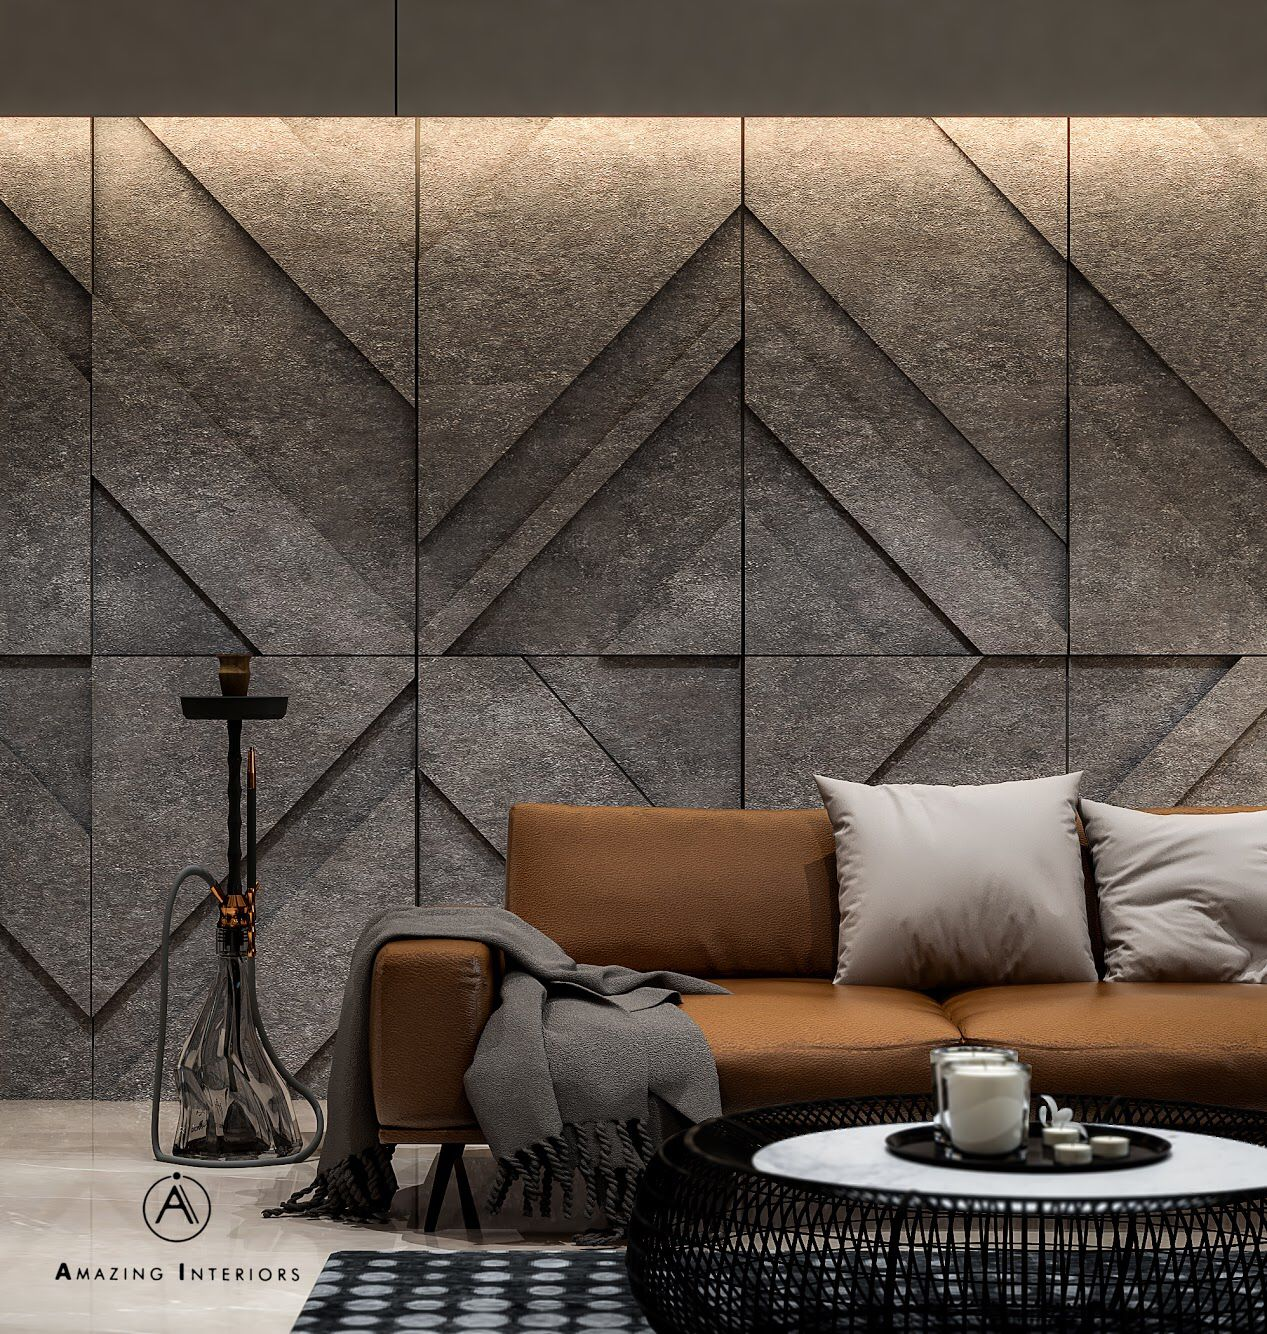 Living Room Design By Amazing Interiors Wall Panel Design Living Room Design Modern Interior Wall Design #wall #panel #design #for #living #room